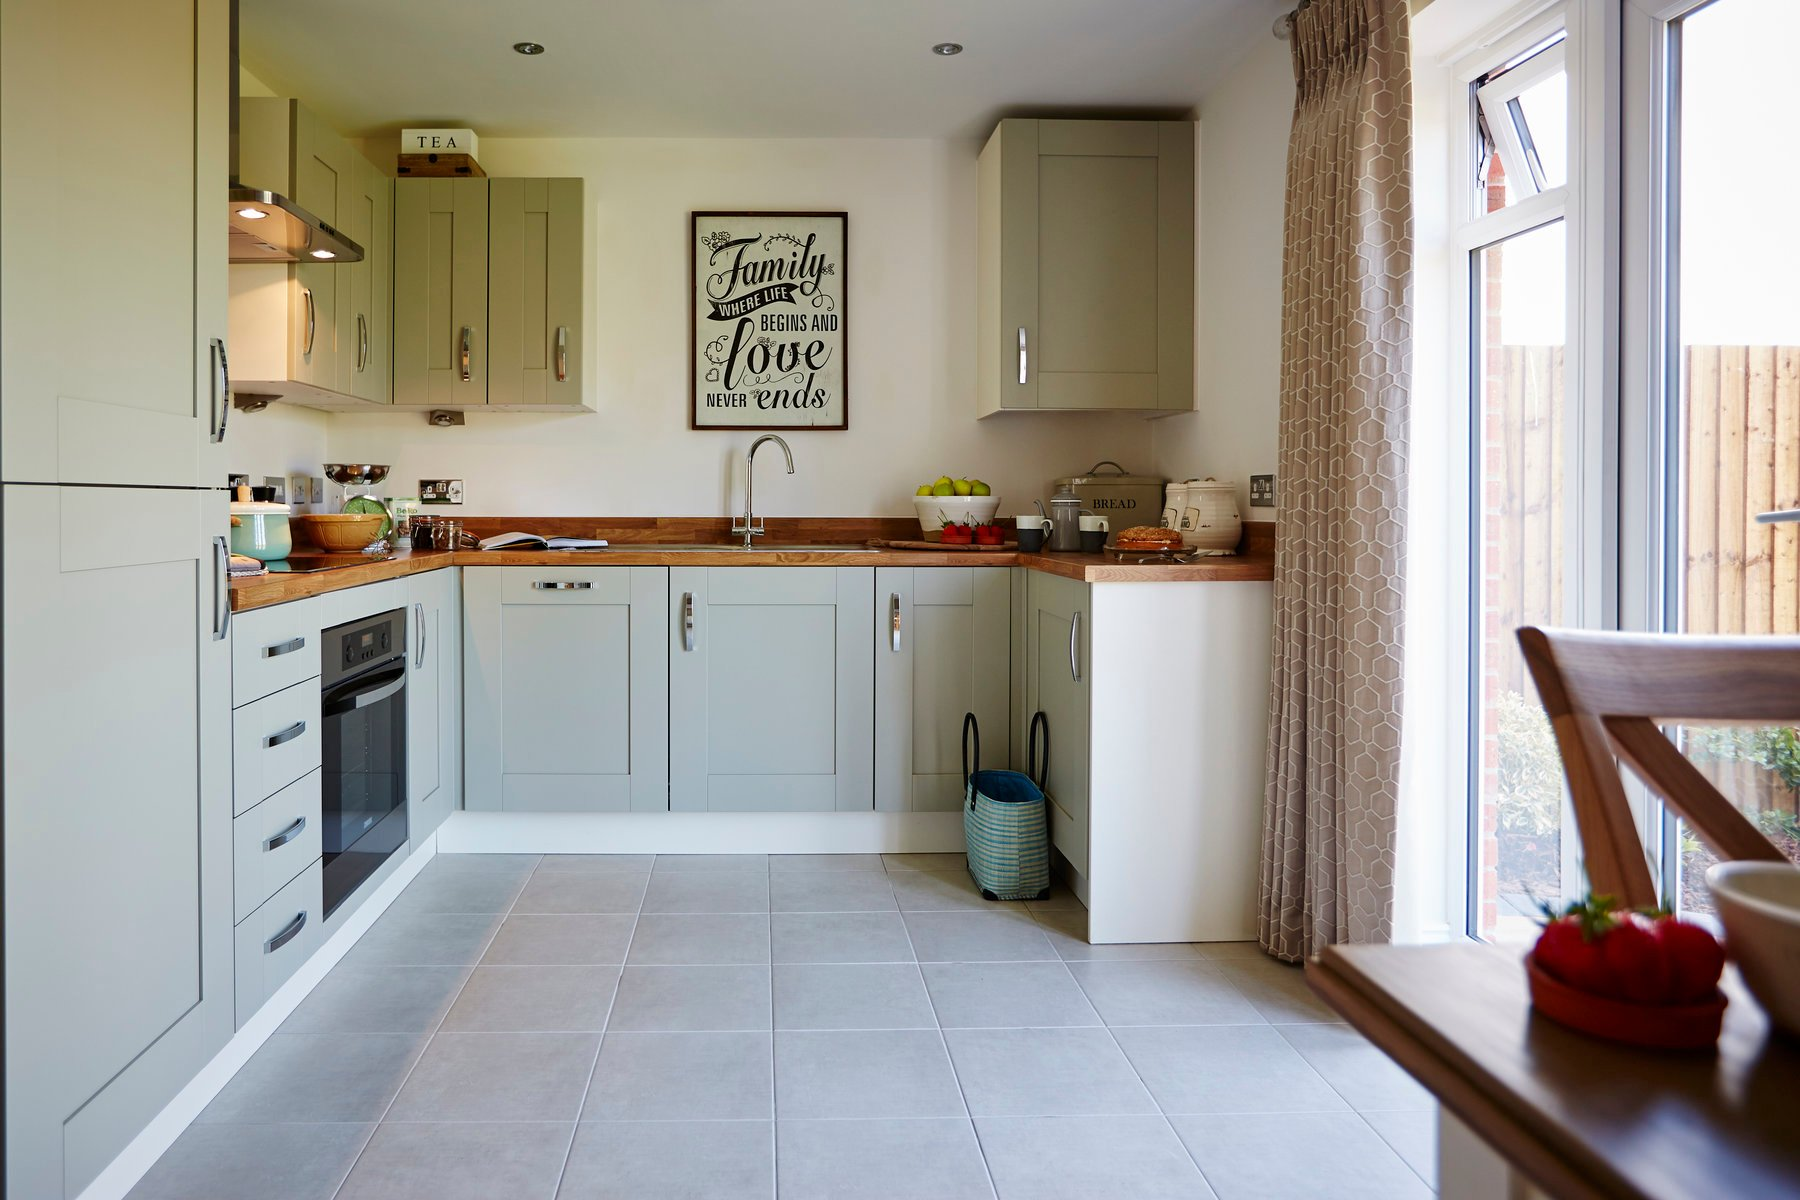 rsz_1tw_mids_burlington_fields_shifnal_pa34_gosford_kitchen_1